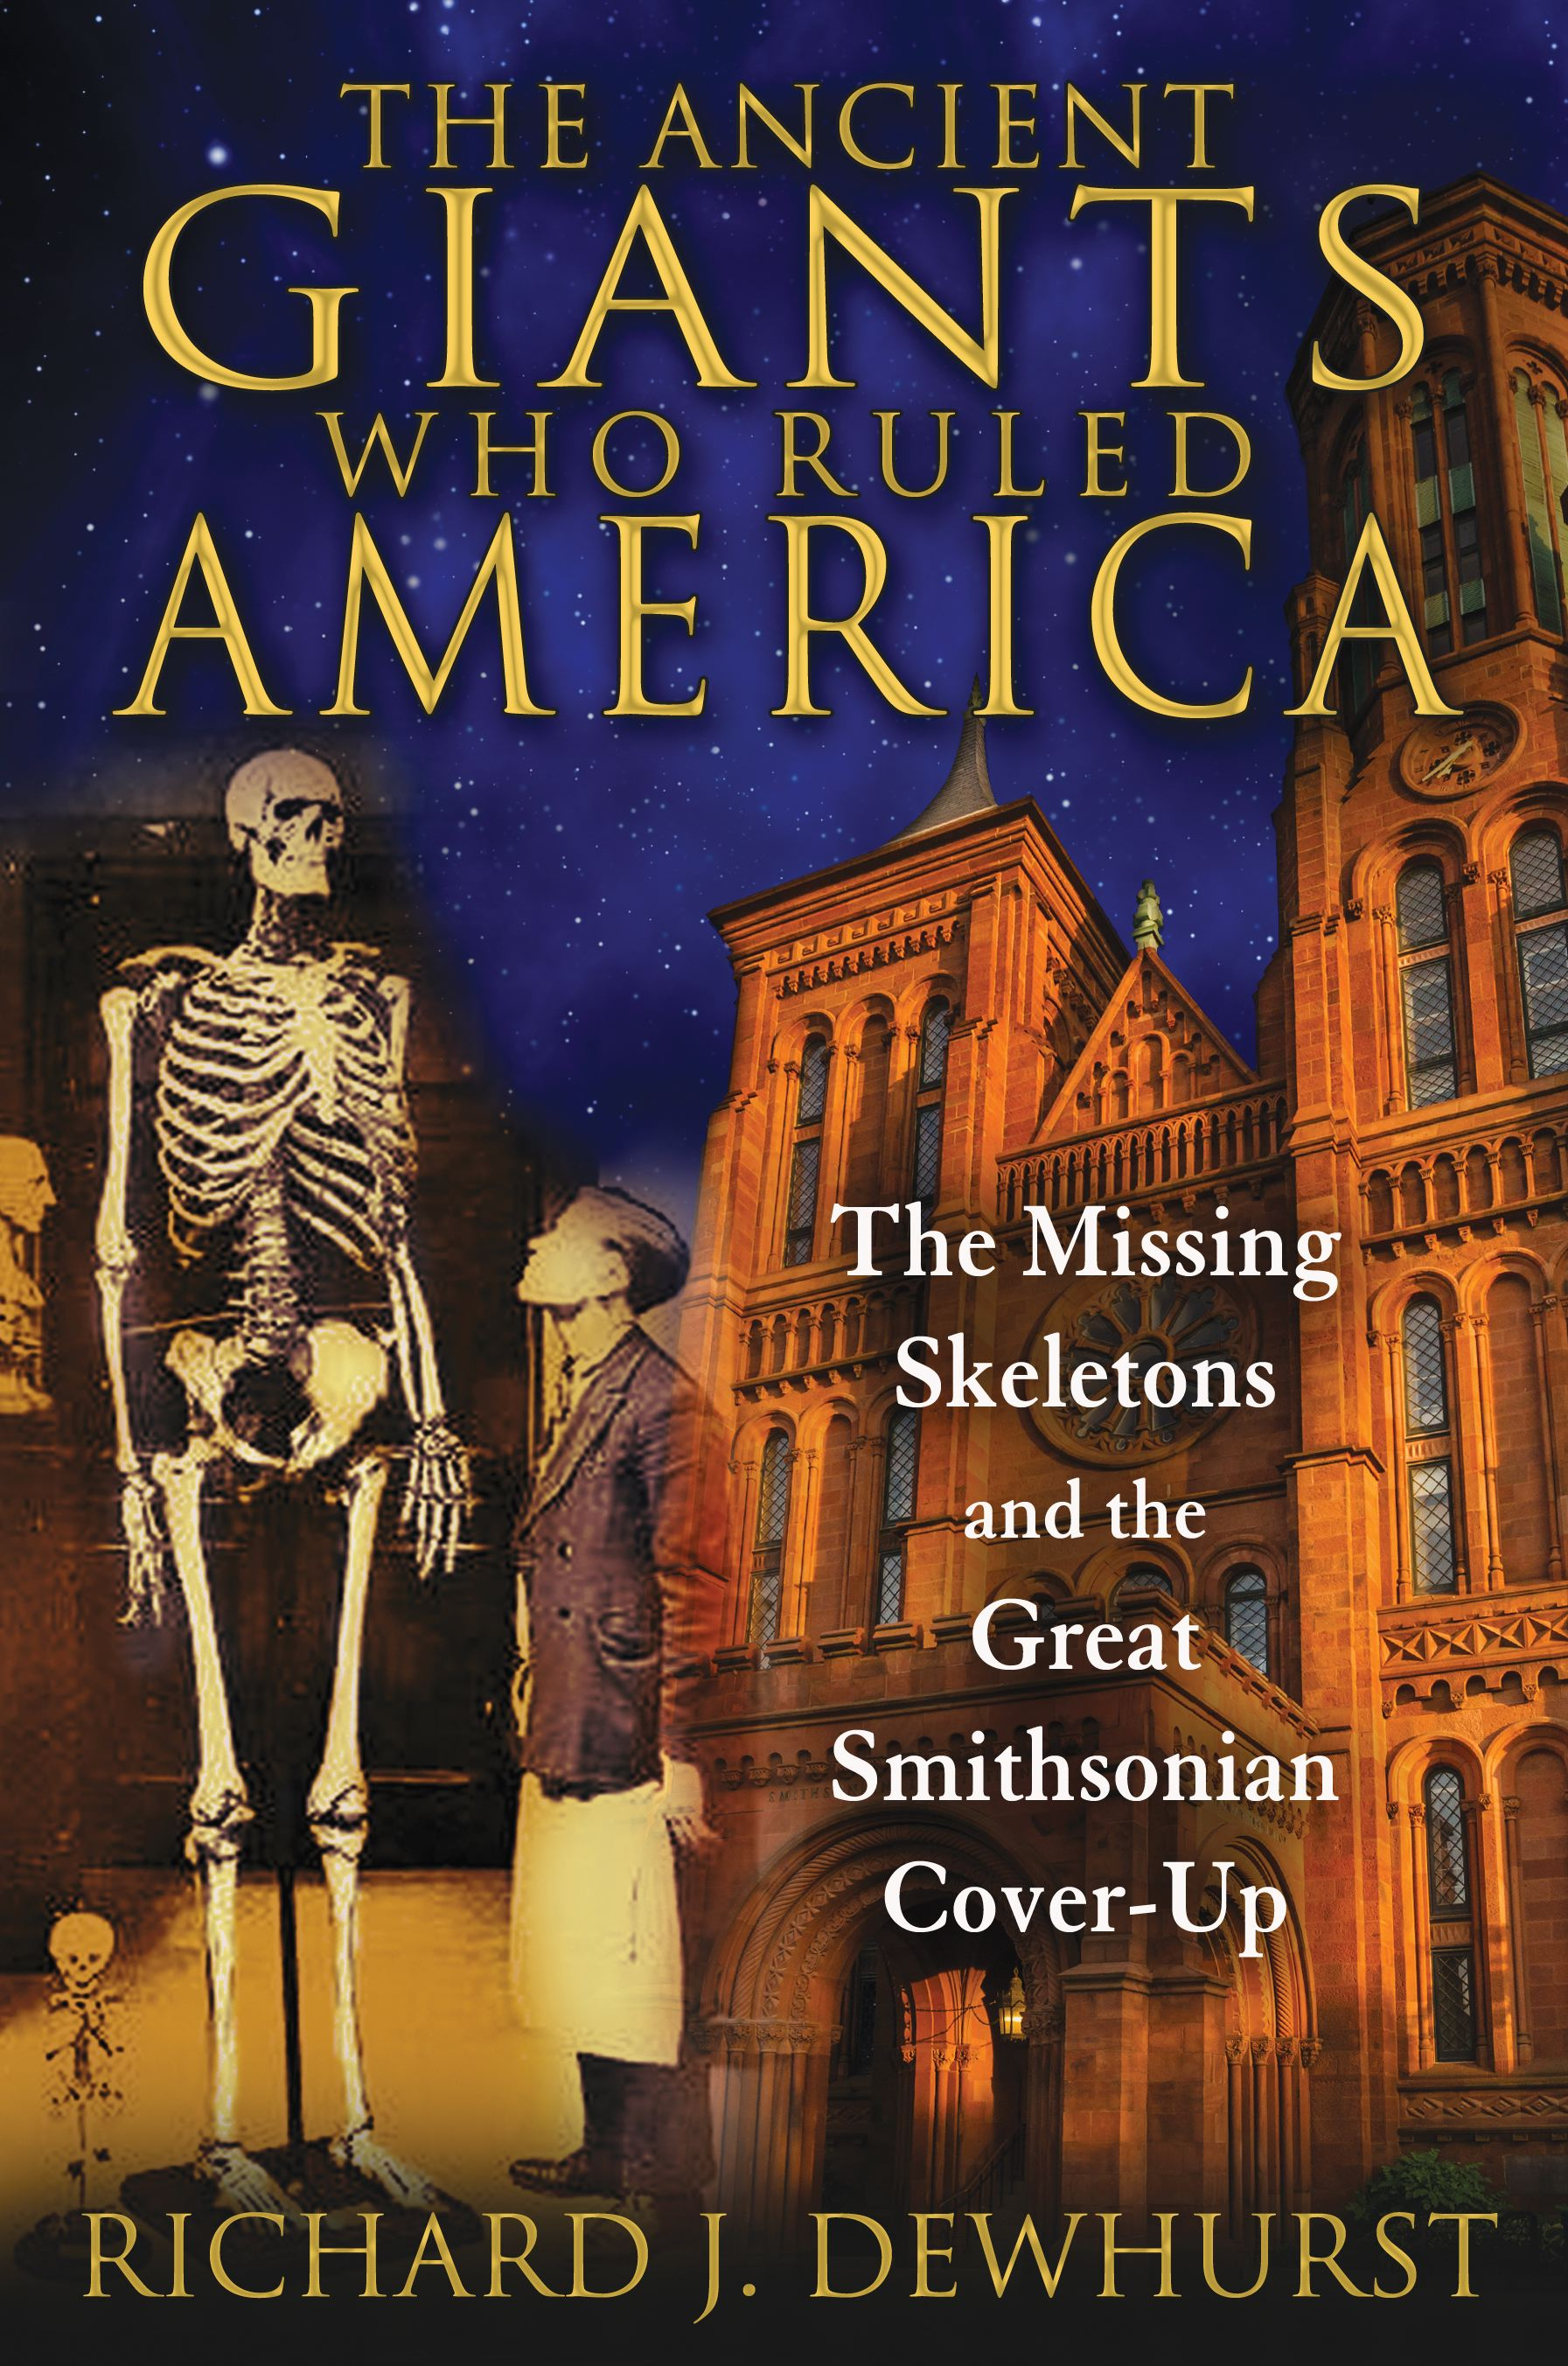 The ancient giants who ruled america 9781591431718 hr